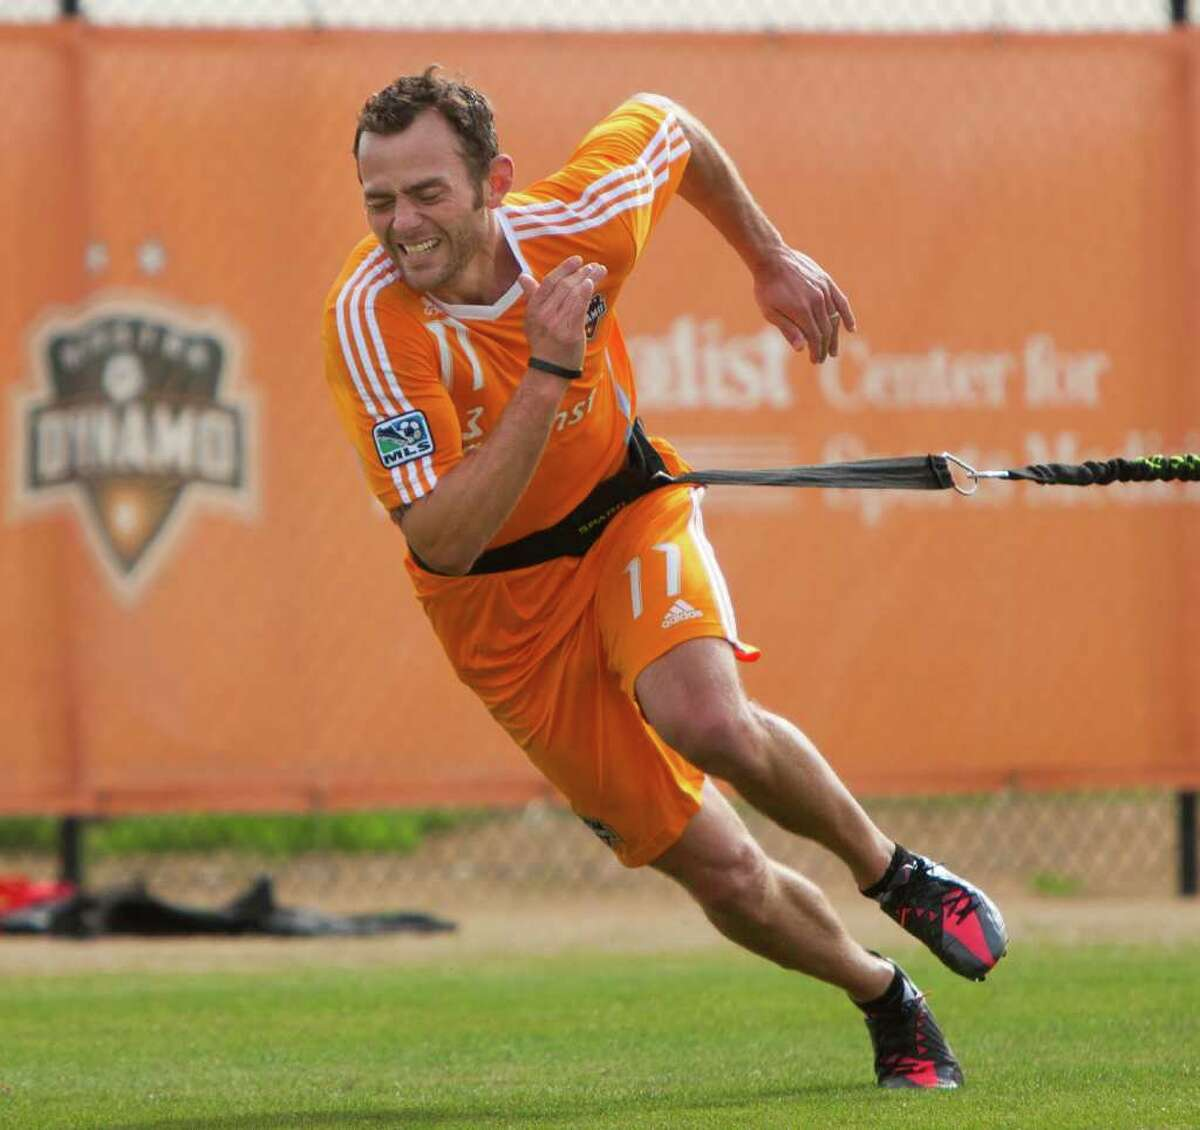 The Dynamo's Brad Davis has pushed himself in the offseason and preseason to be ready for the opener.